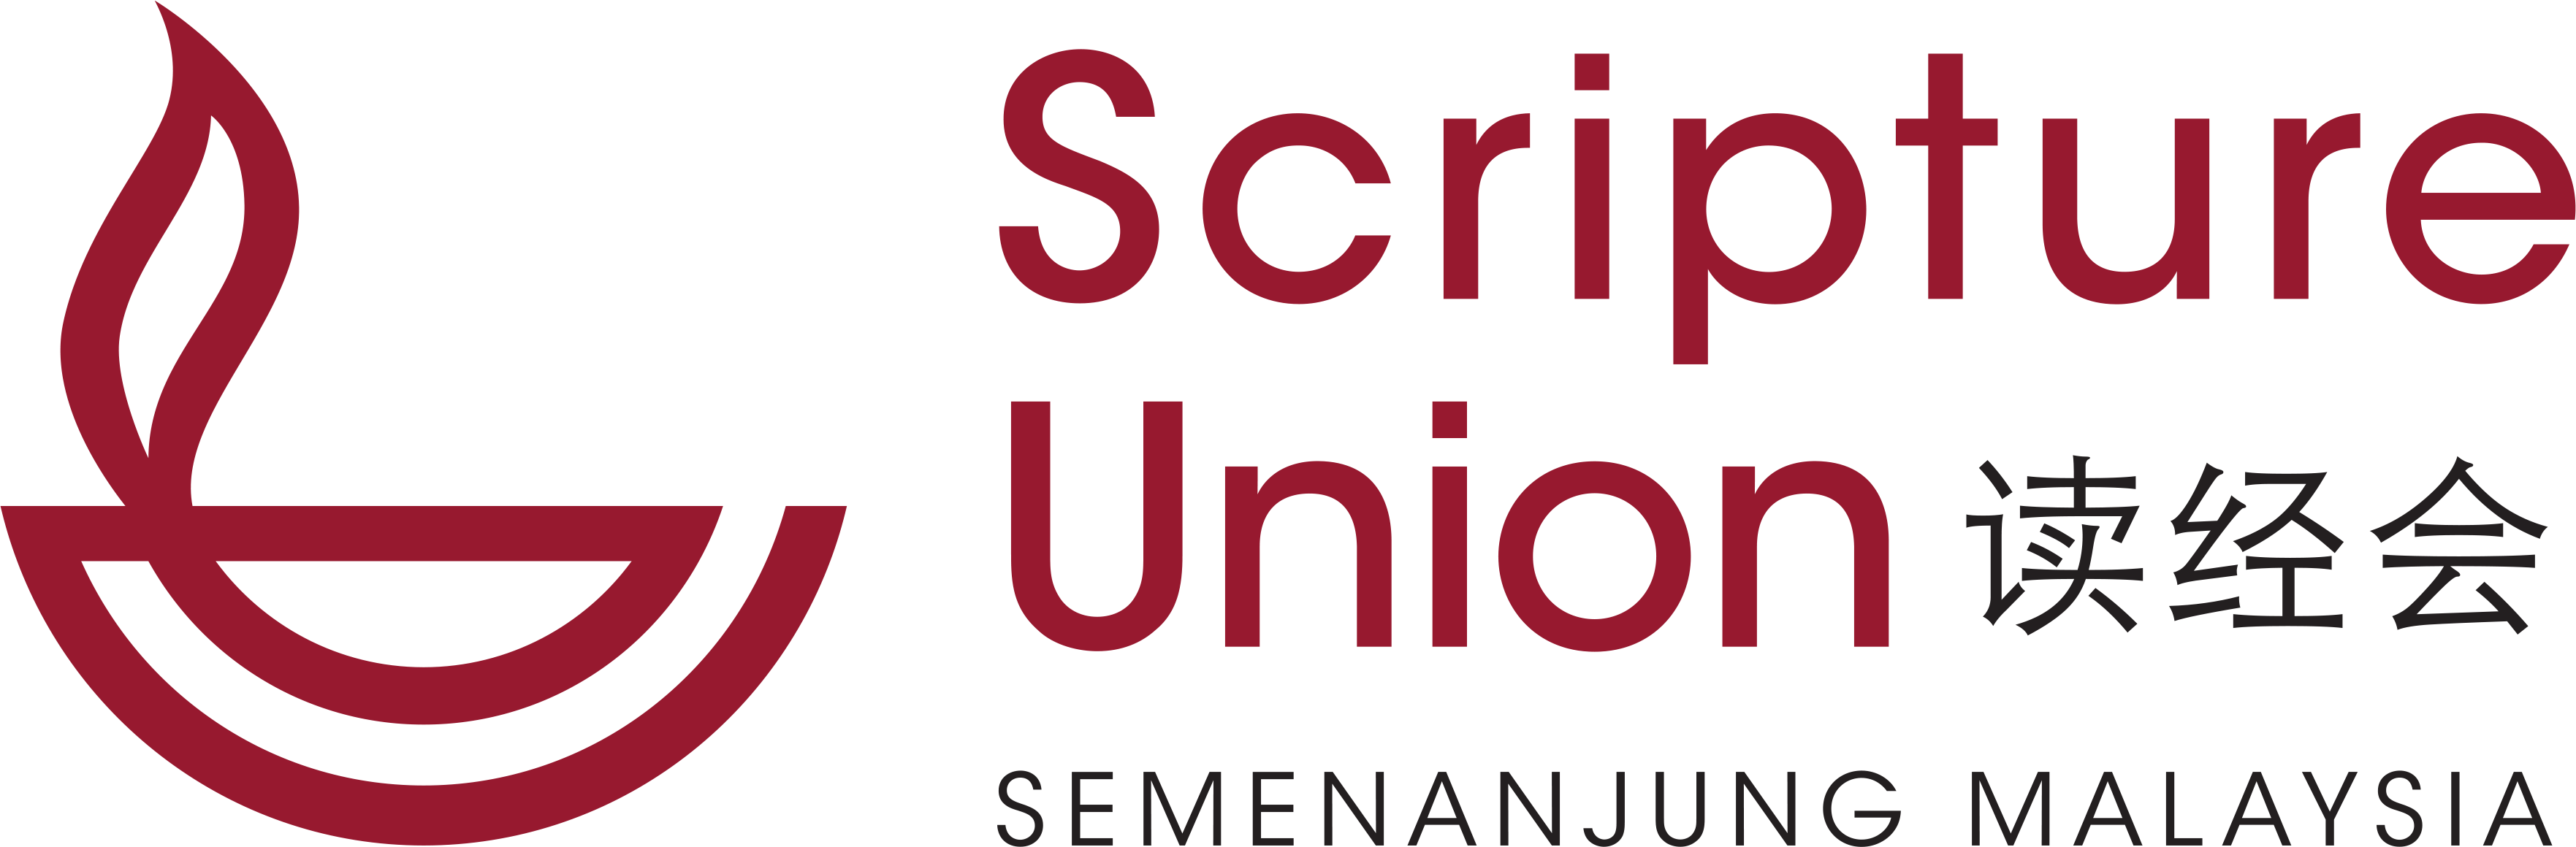 Scripture Union logo